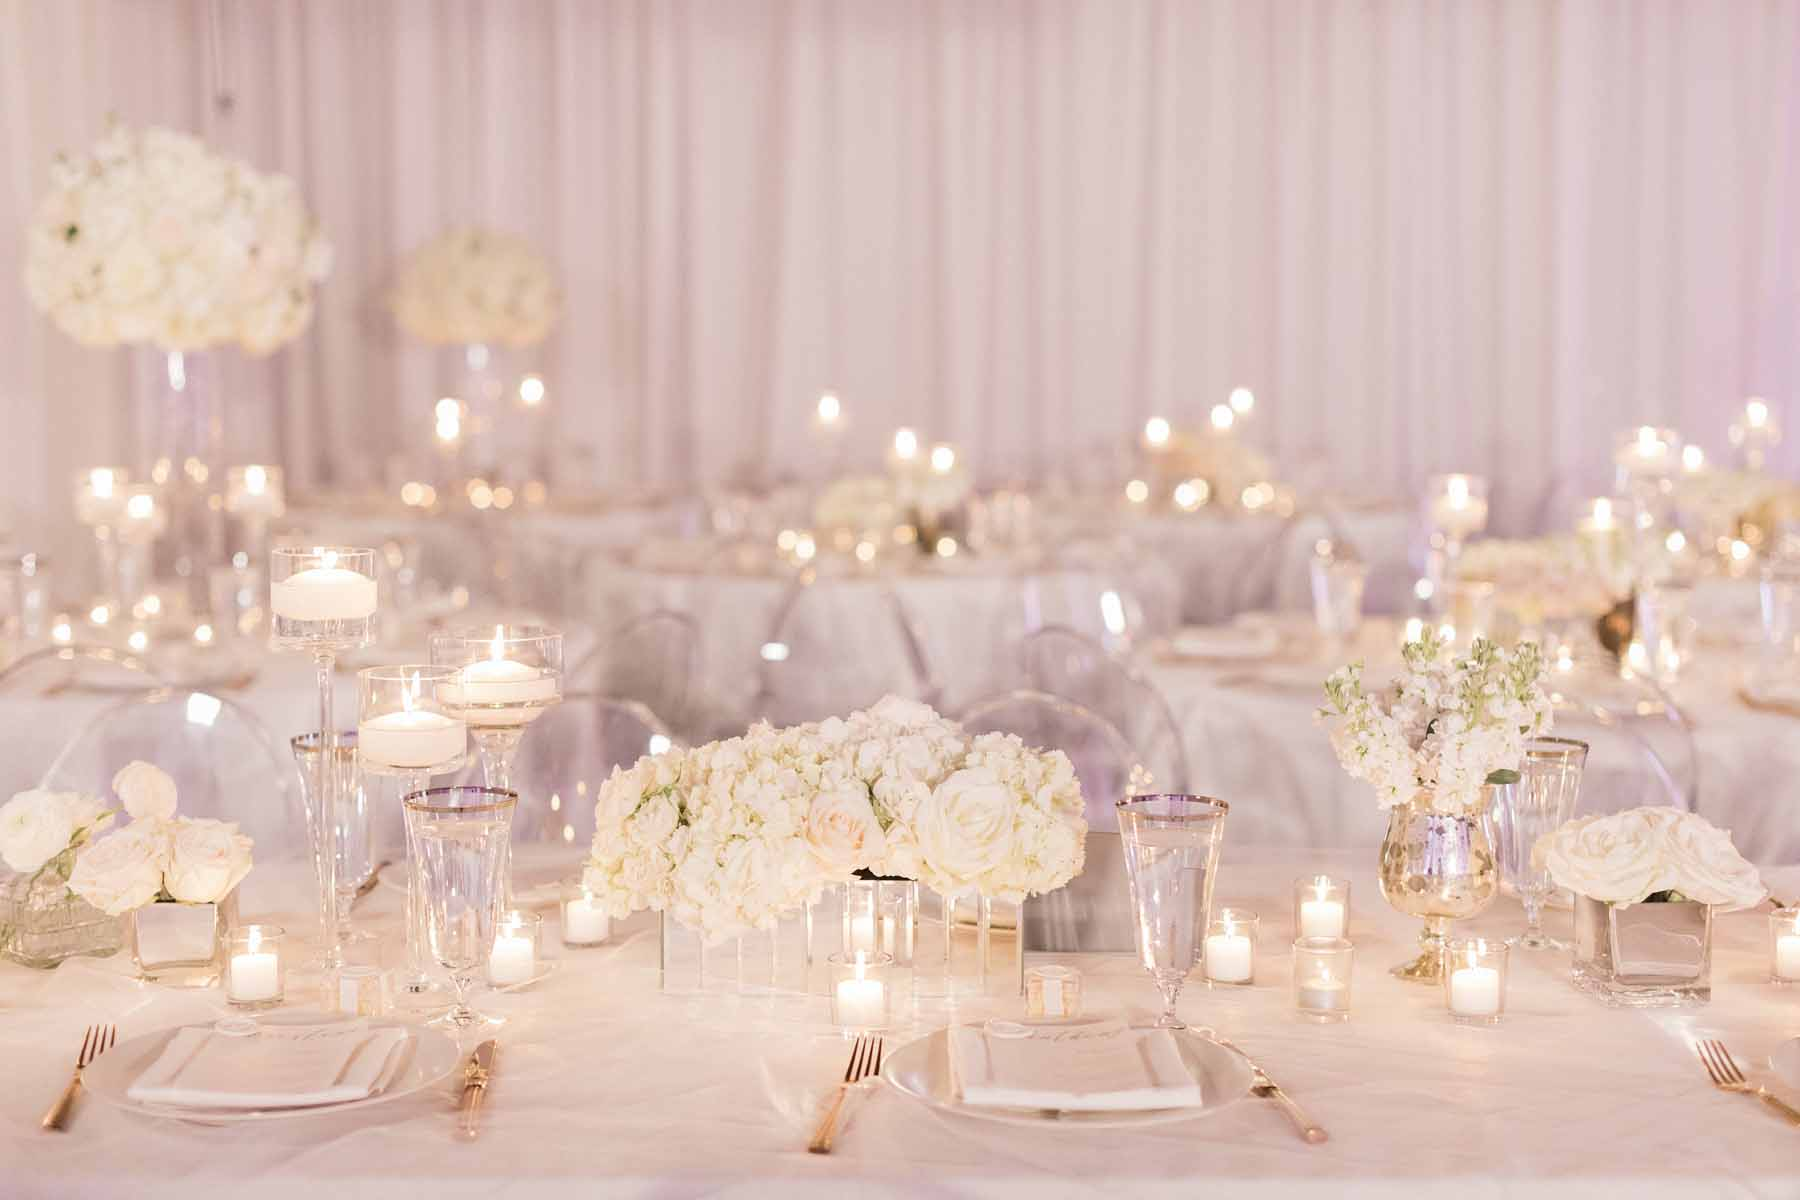 Modern in all white at Canvas Event Space wedding: white draping, white linens, white centerpieces